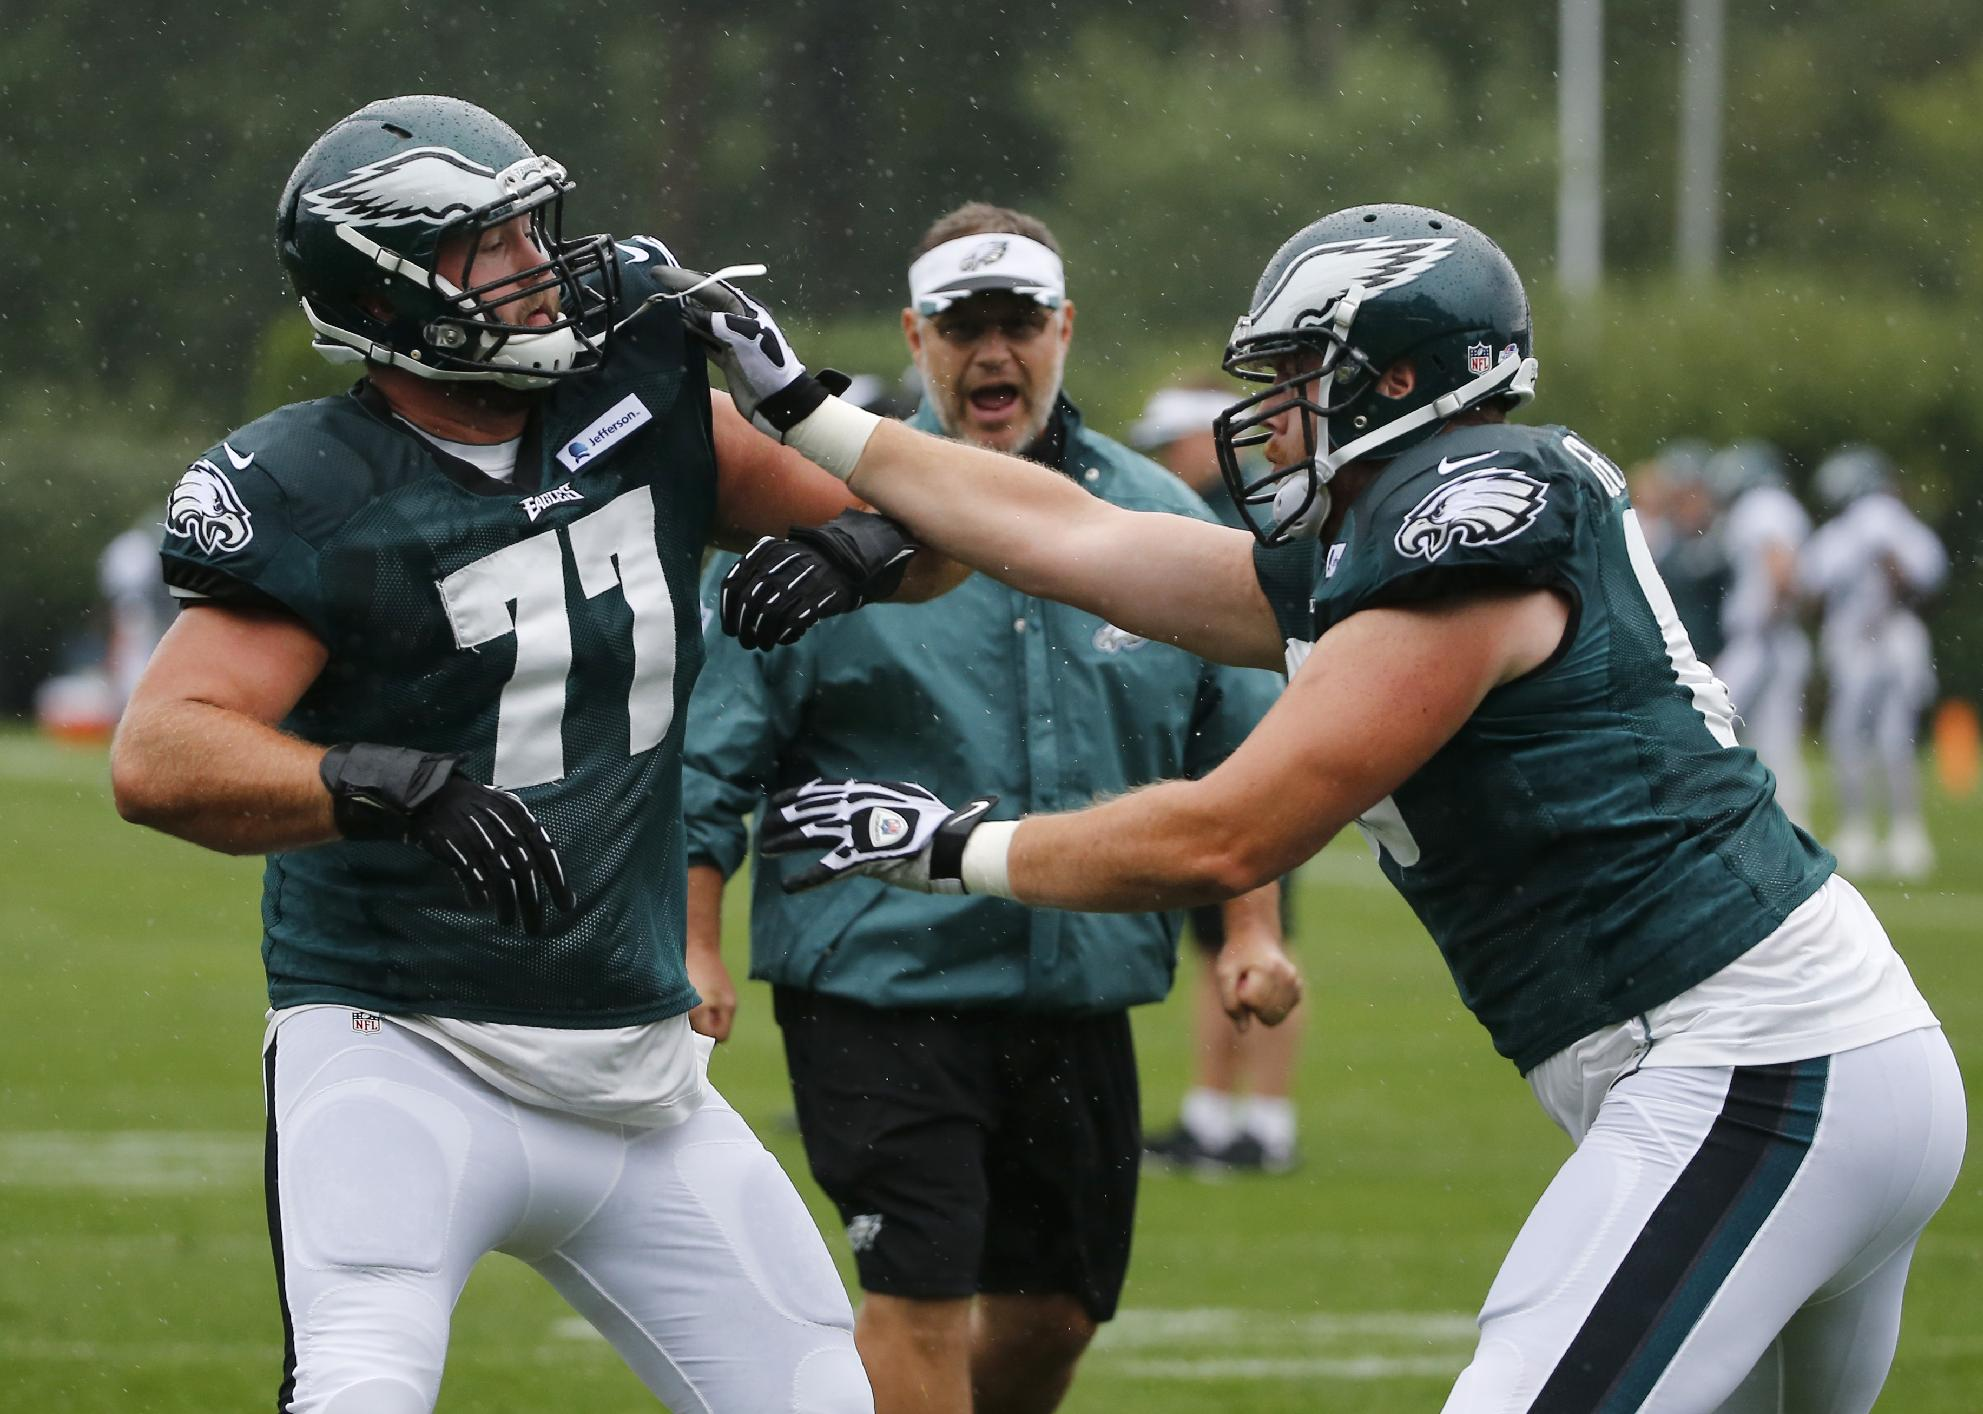 Philadelphia Eagles tackle Andrew Gardner, right, pushes against tackle Kevin Graf (77) as offensive line coach Jeff Stoutland yells instruction during an NFL football training camp joint practice of the New England Patriots and the Philadelphia Eagles in Foxborough, Mass., Wednesday, Aug. 13, 2014